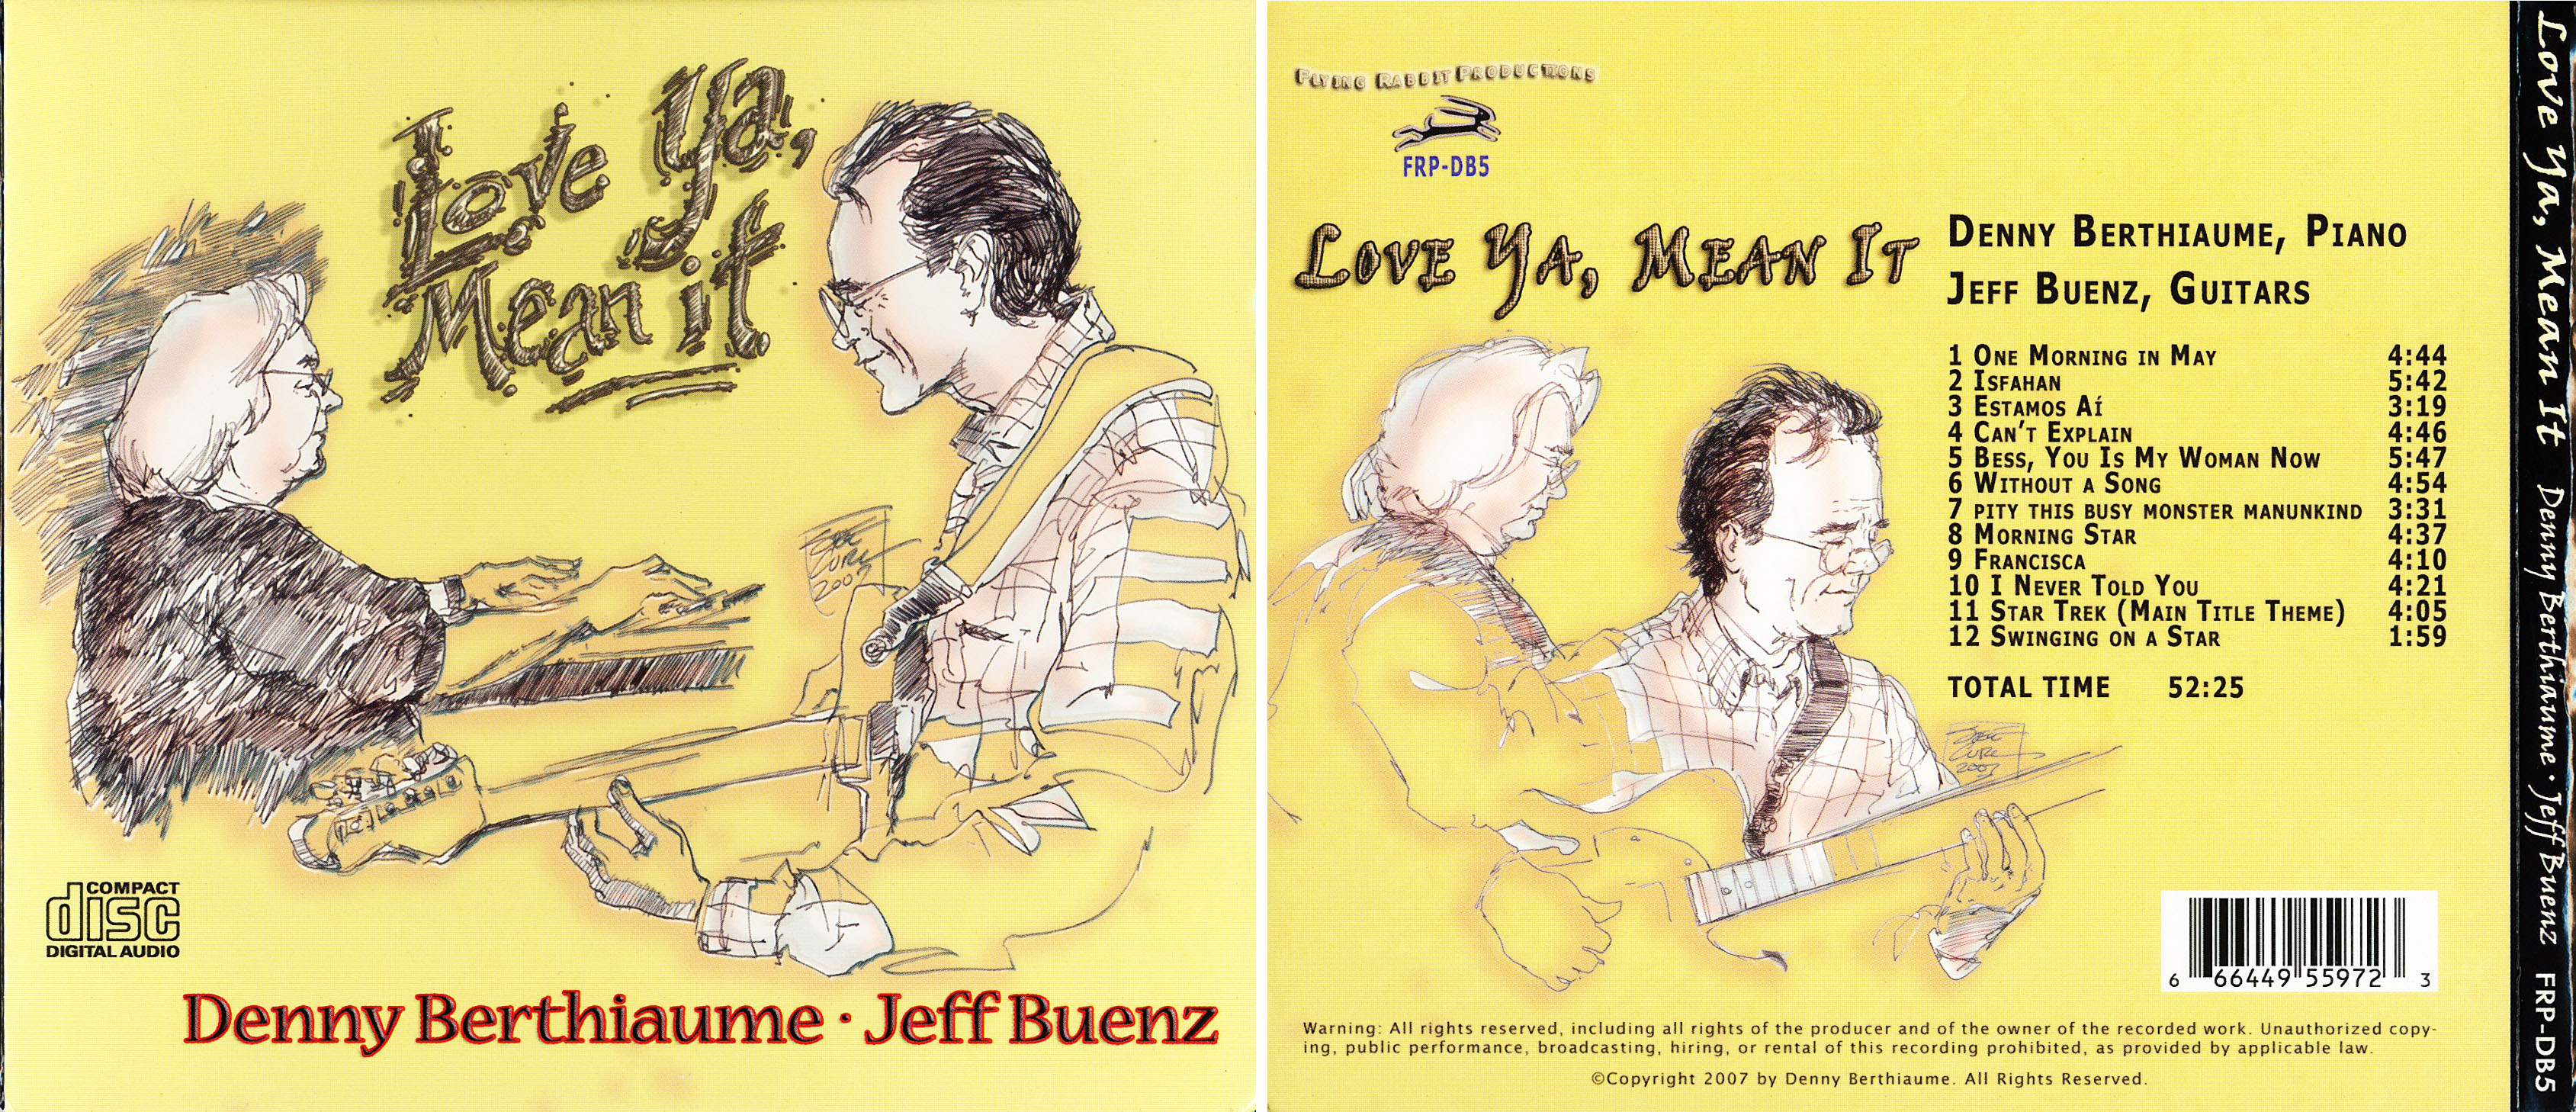 Denny Berthiaume-Jeff Buenz | Love Ya, Mean It